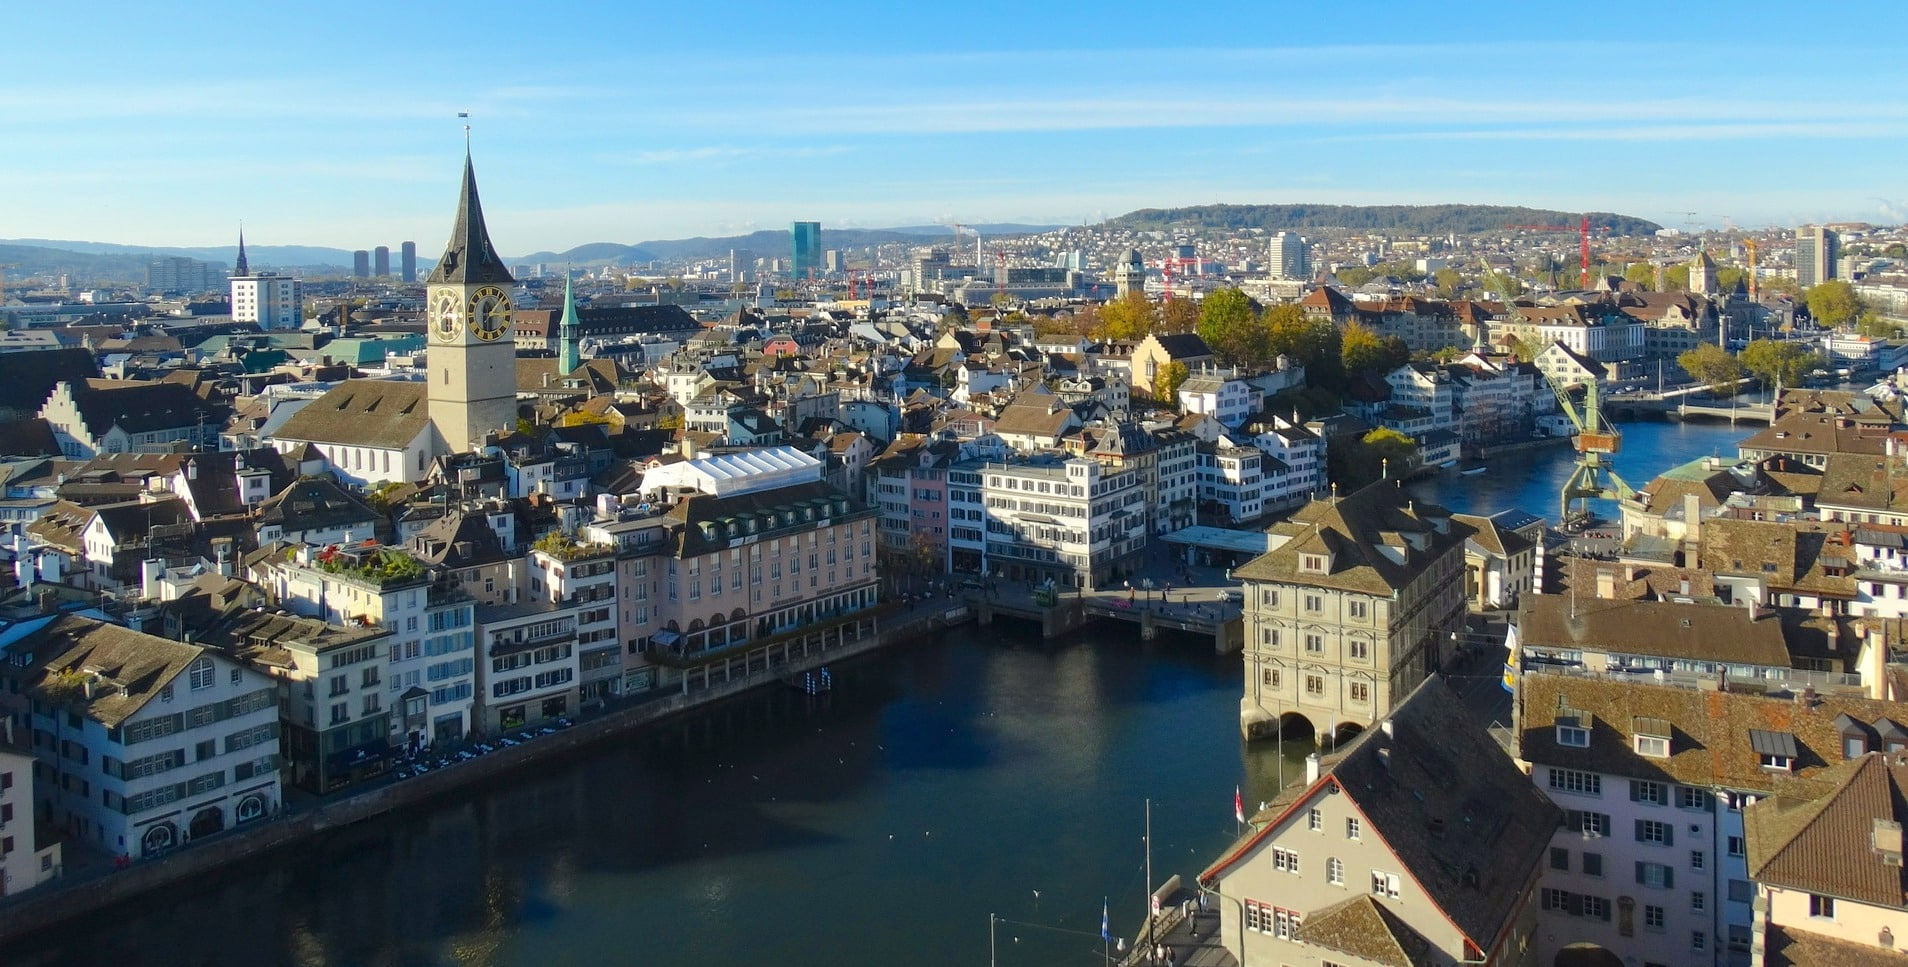 Where to Find the Best Views in Zurich